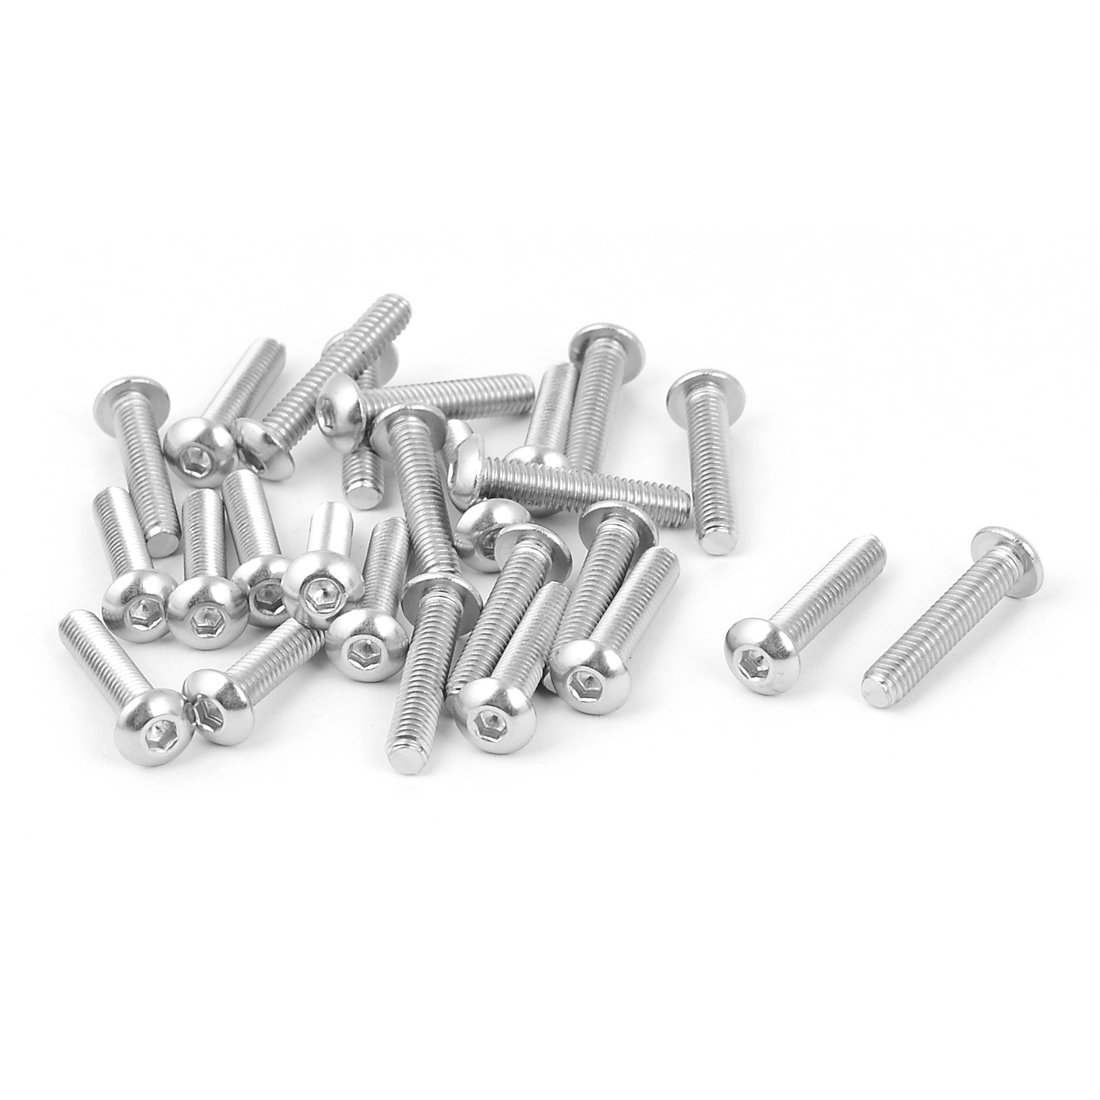 M4 x 20mm Stainless Steel Button Head Socket Cap Screw 25 Pcs